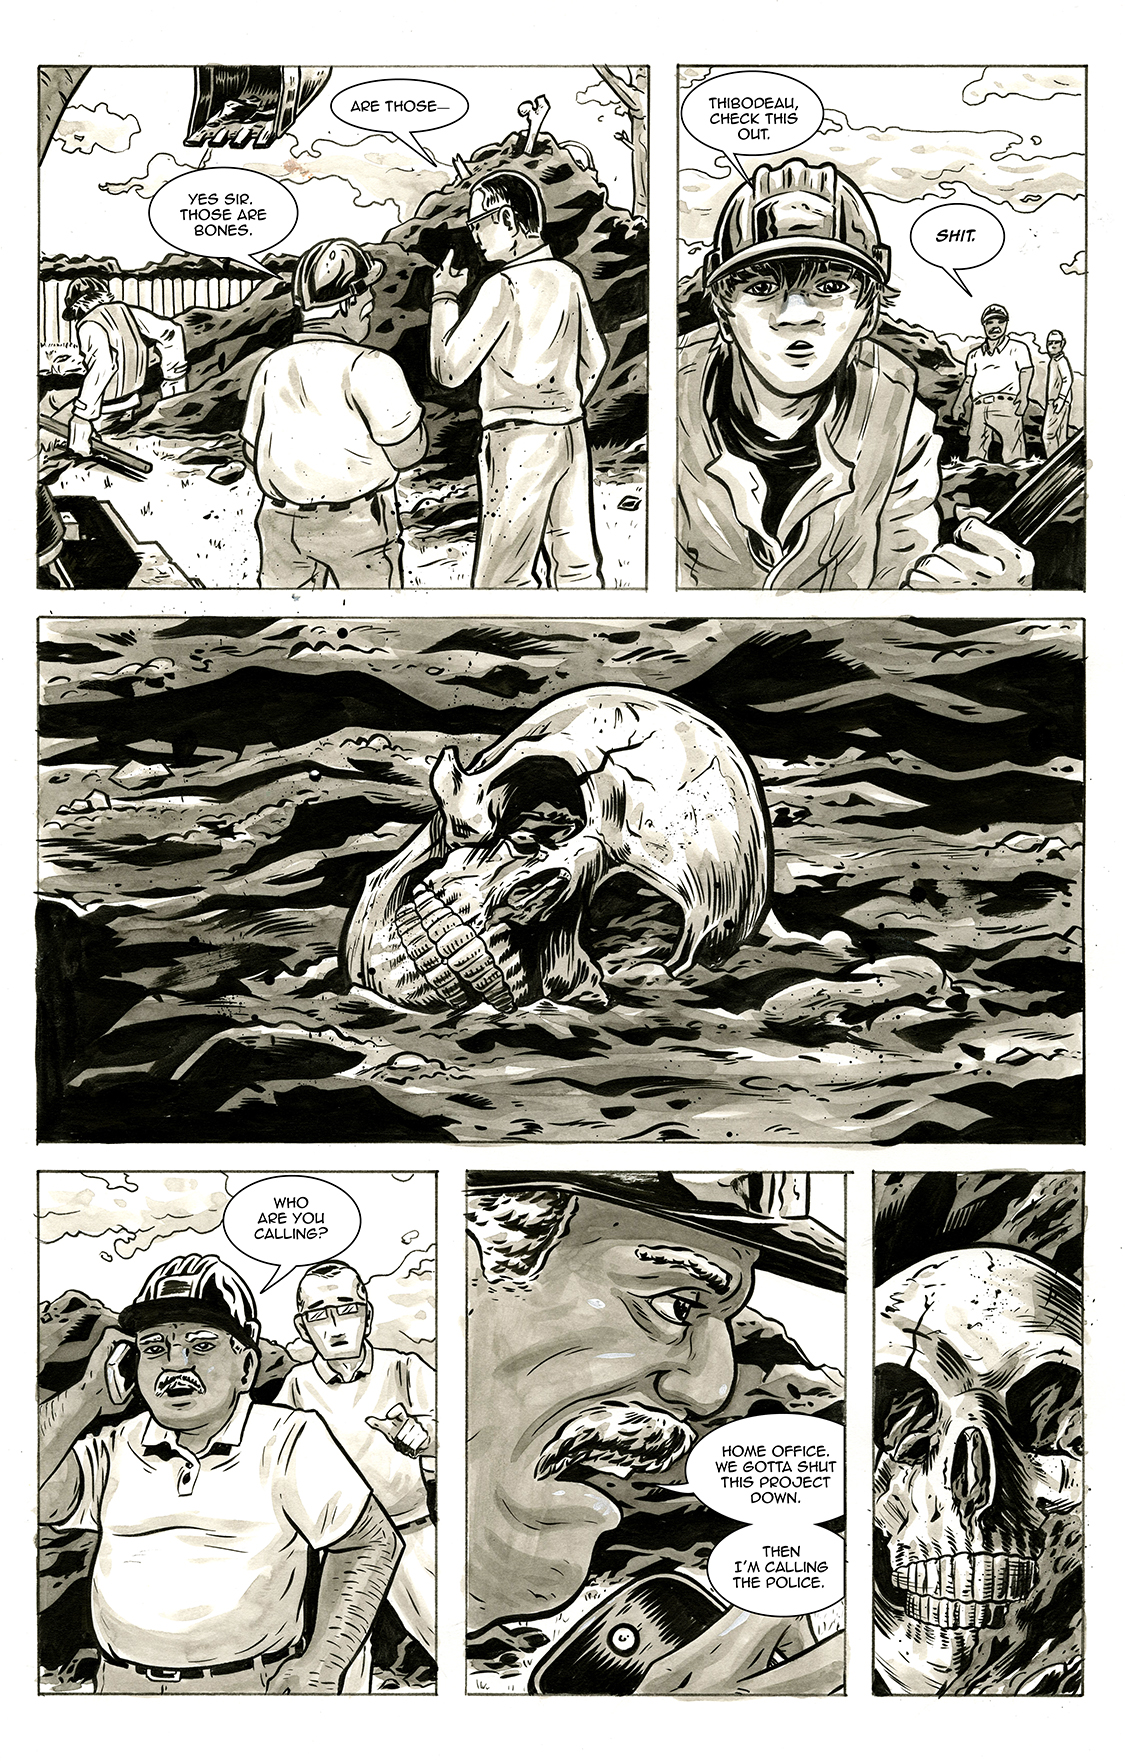 Lone and Level, page 3, by Sam Costello and Max Temescu